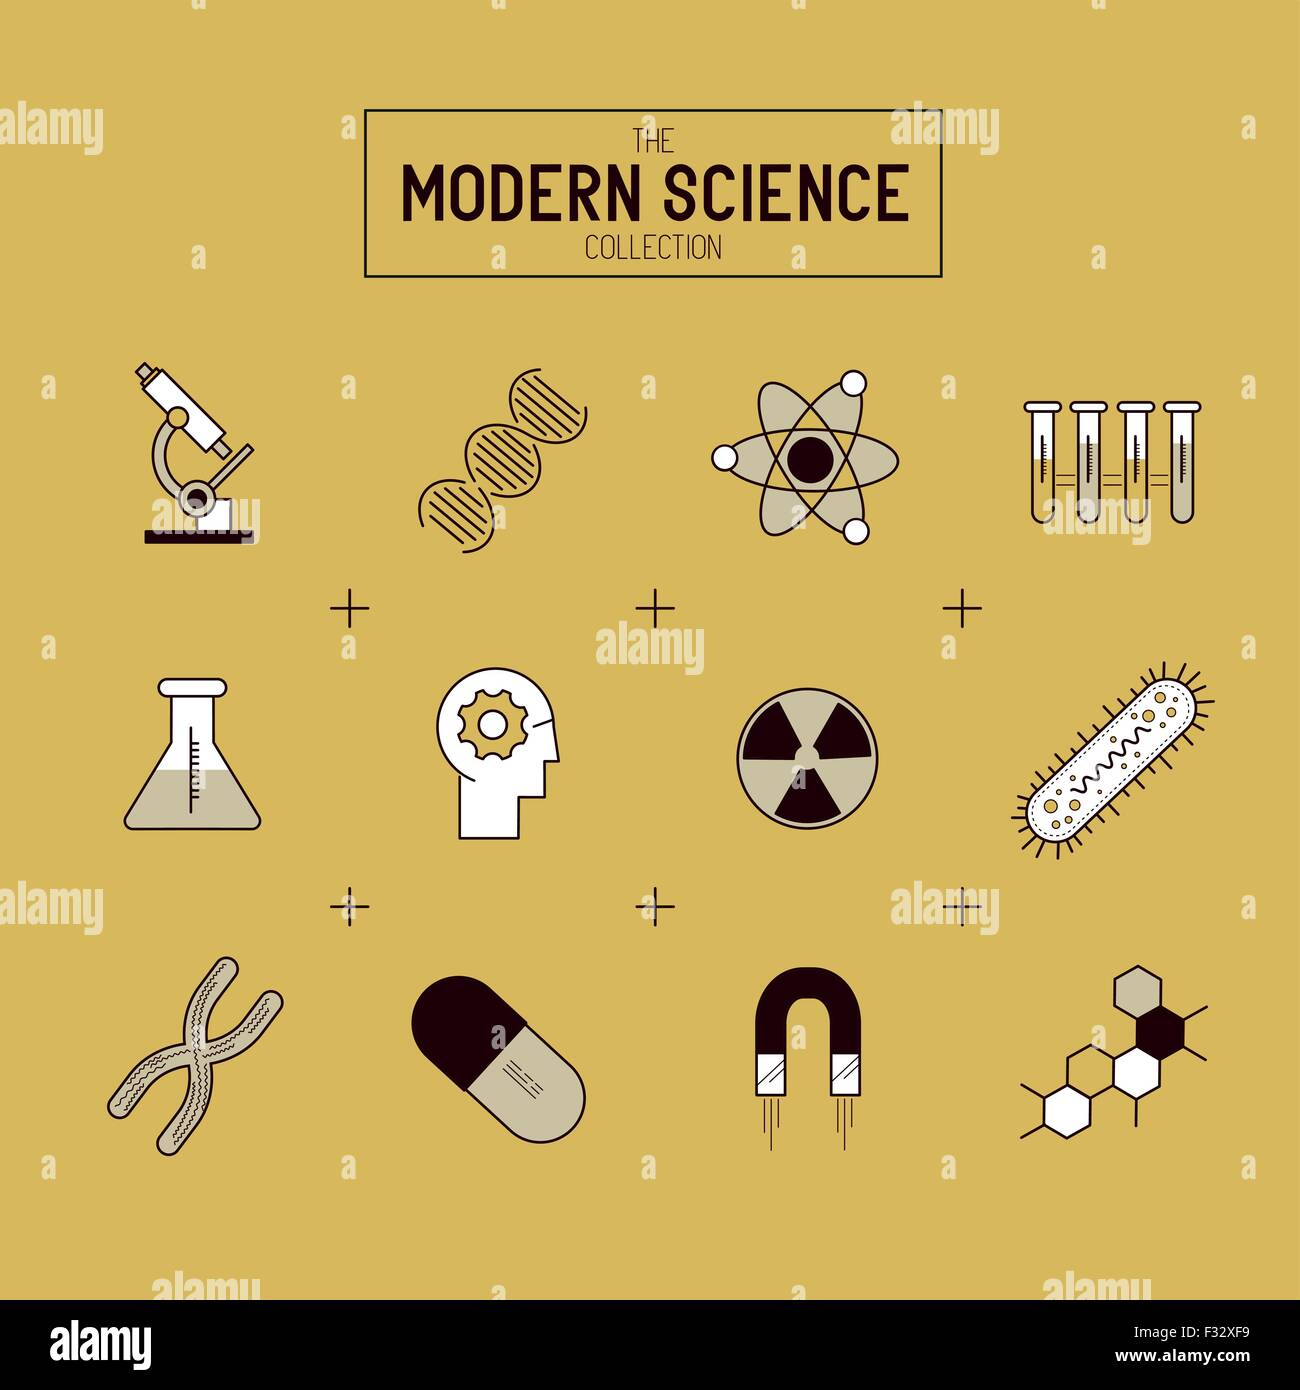 Science gold vector icon set a collection of gold science themed science gold vector icon set a collection of gold science themed line icons including a atom chemistry symbols and equipment biocorpaavc Gallery